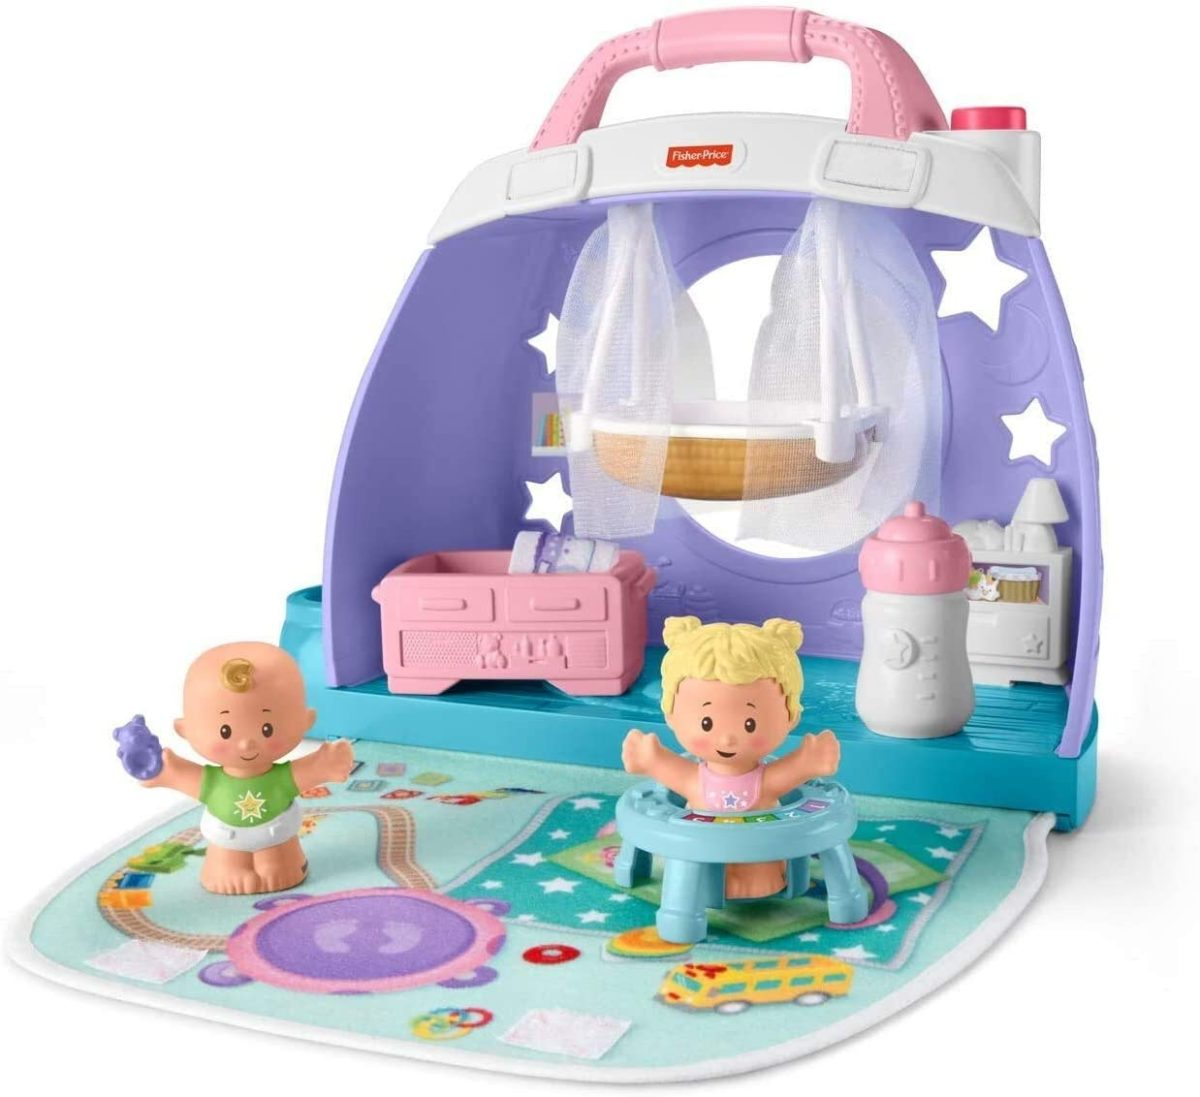 22 top quality fisher-price toys that also educational and entertaining | parenting questions | mamas uncut 61pnzfmgyl. ac sl1241